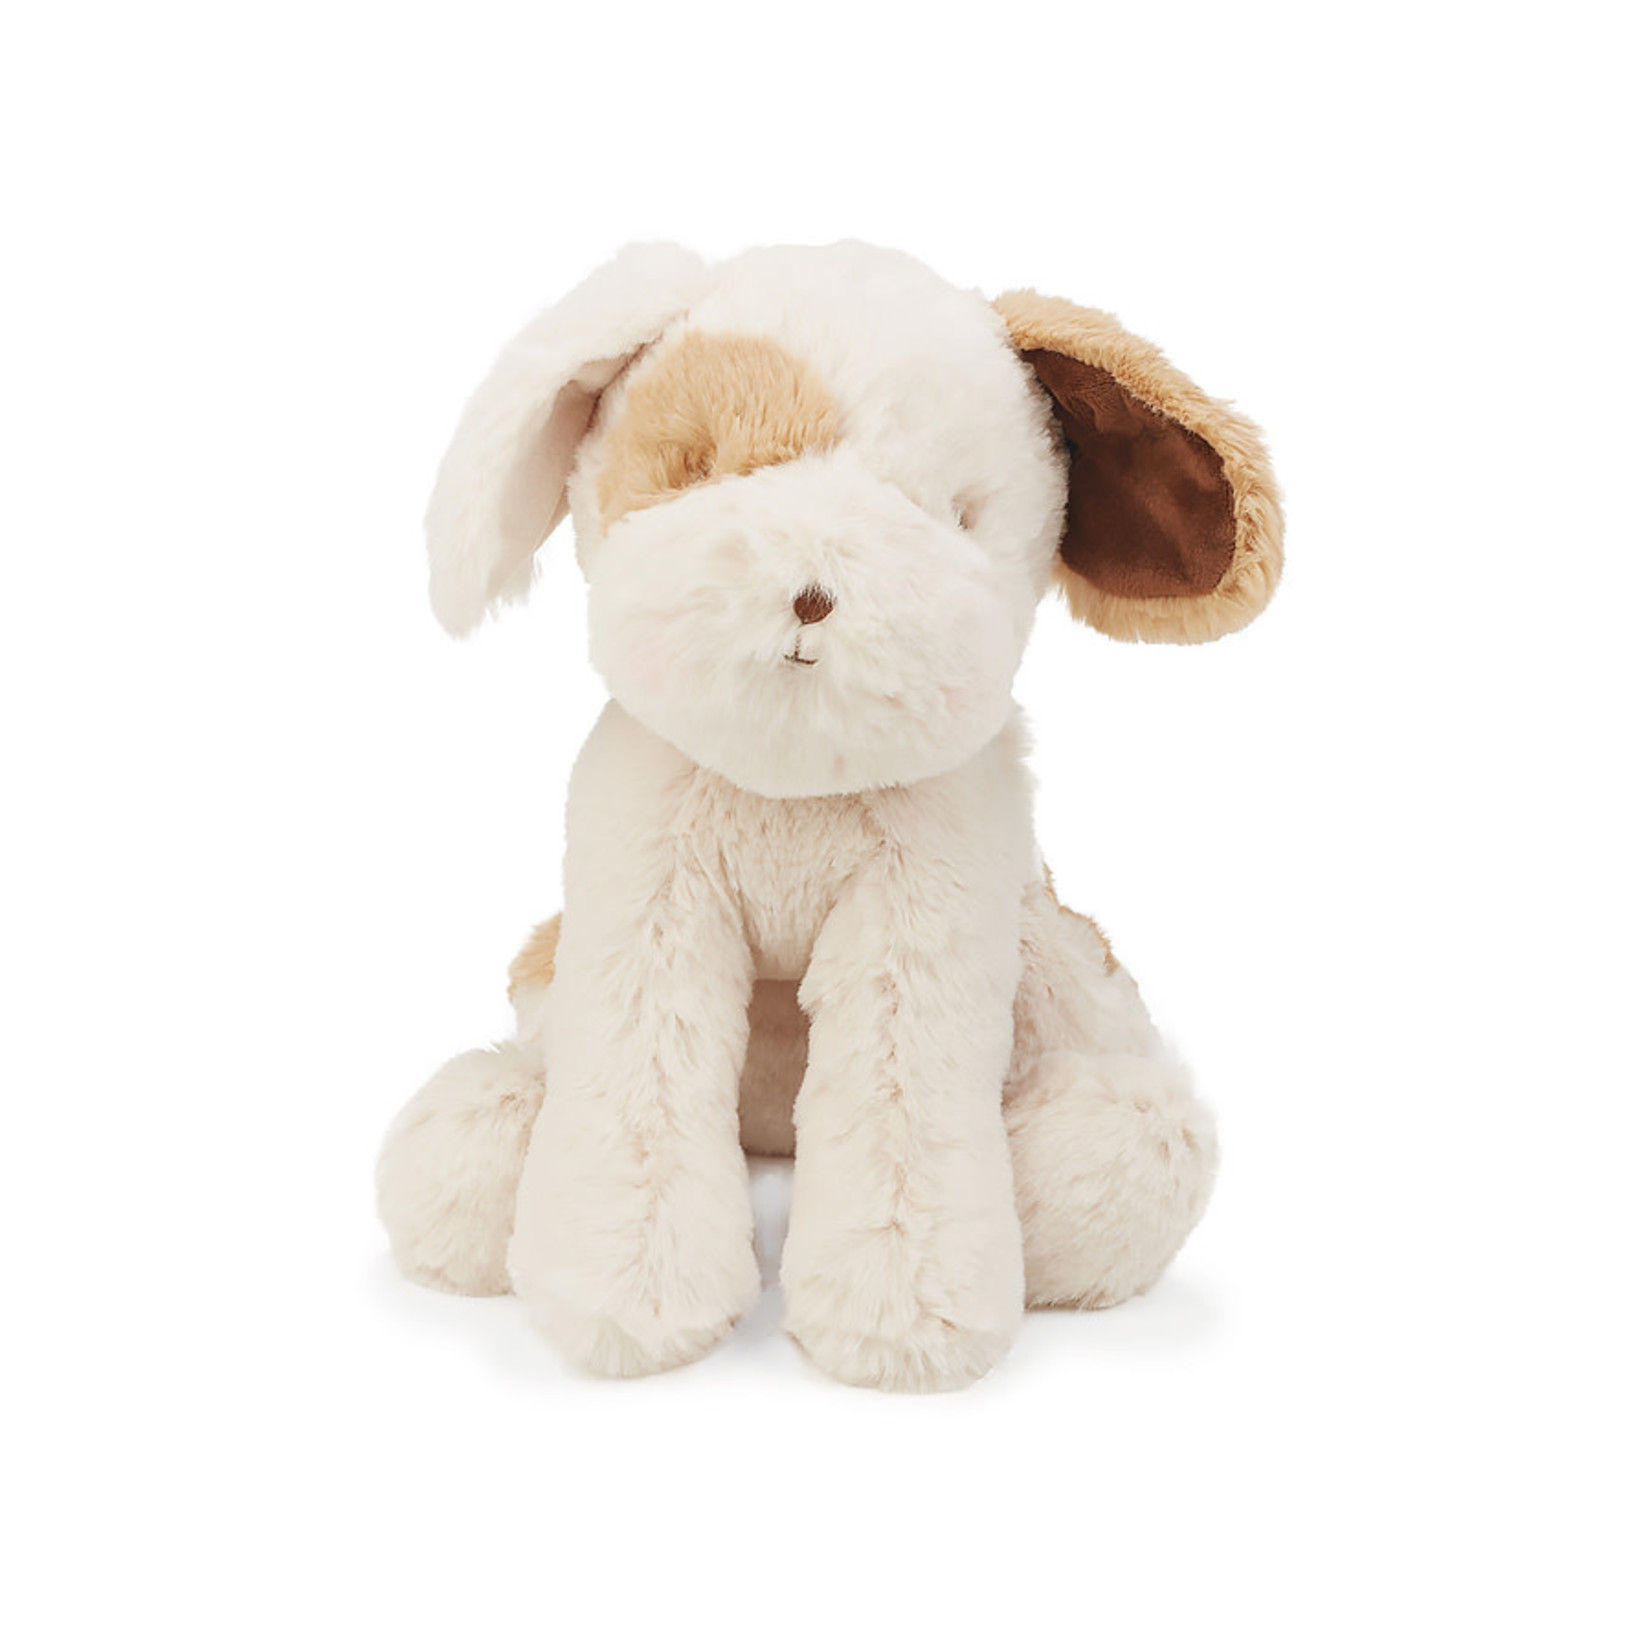 Bunnies By the Bay Little Skipit Plush Doll